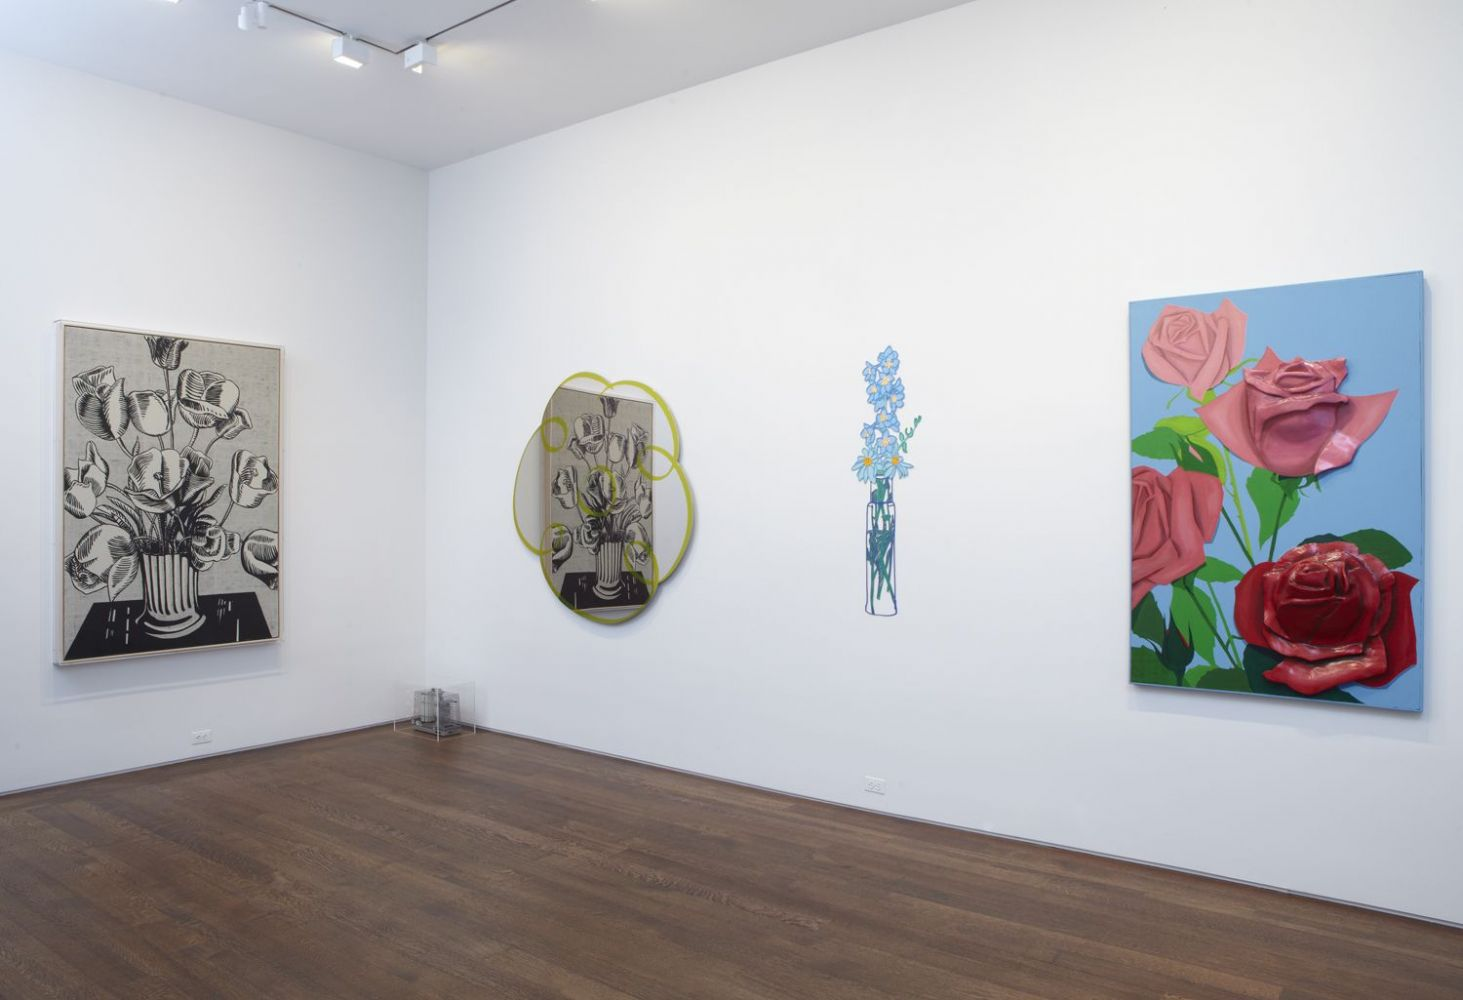 ​Installation view of The Pop Object: The Still Life Tradition in Pop Art, April 9 - May 23, 2013. Left to right: